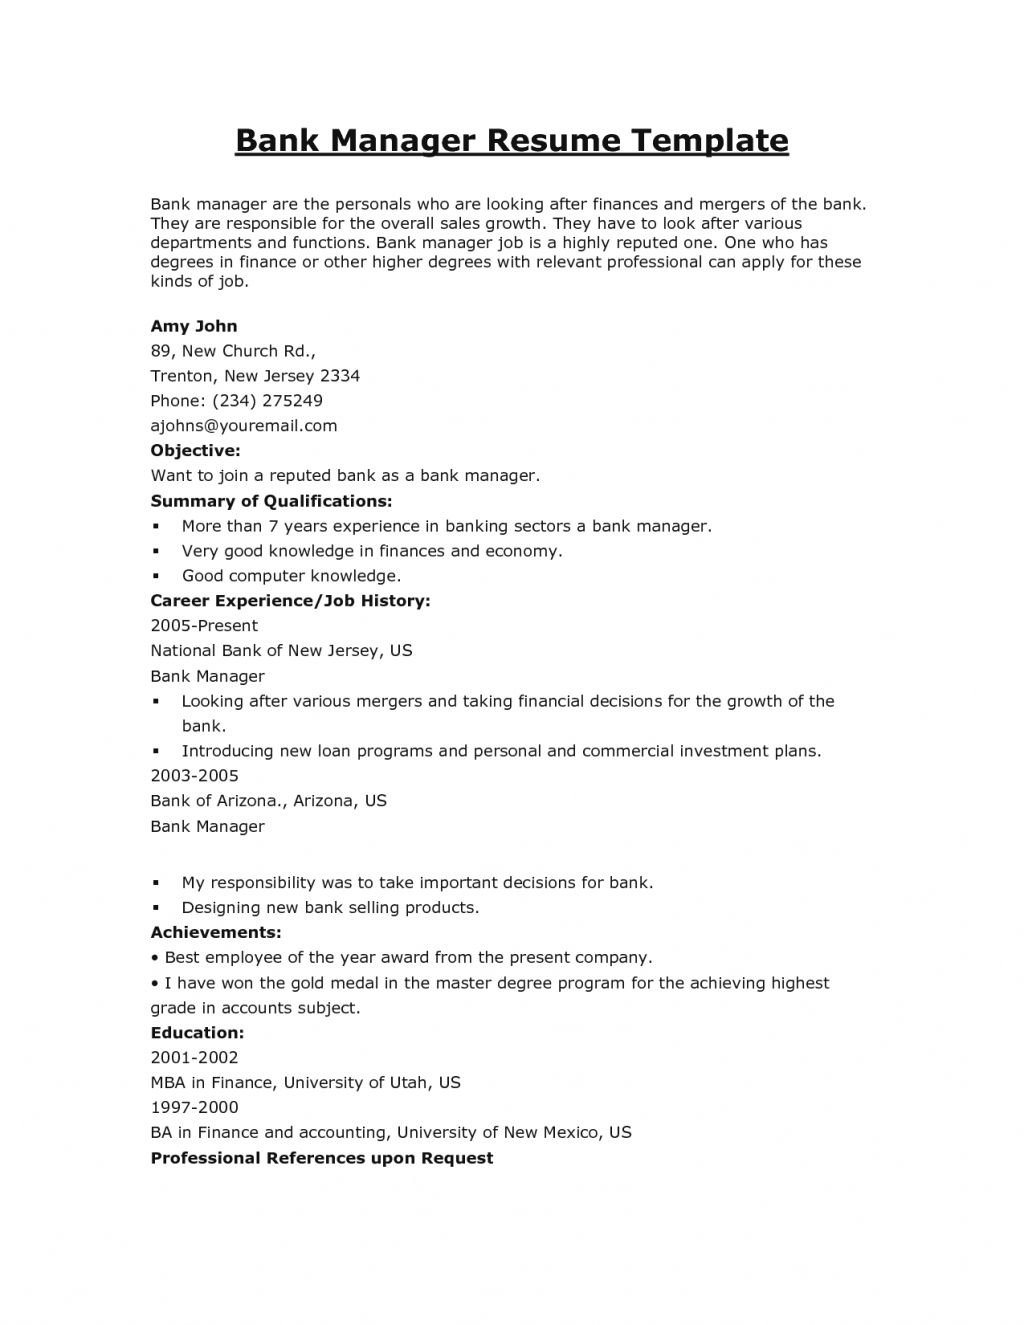 wso resume template example-wso cover letter april onthemarch co 15-k